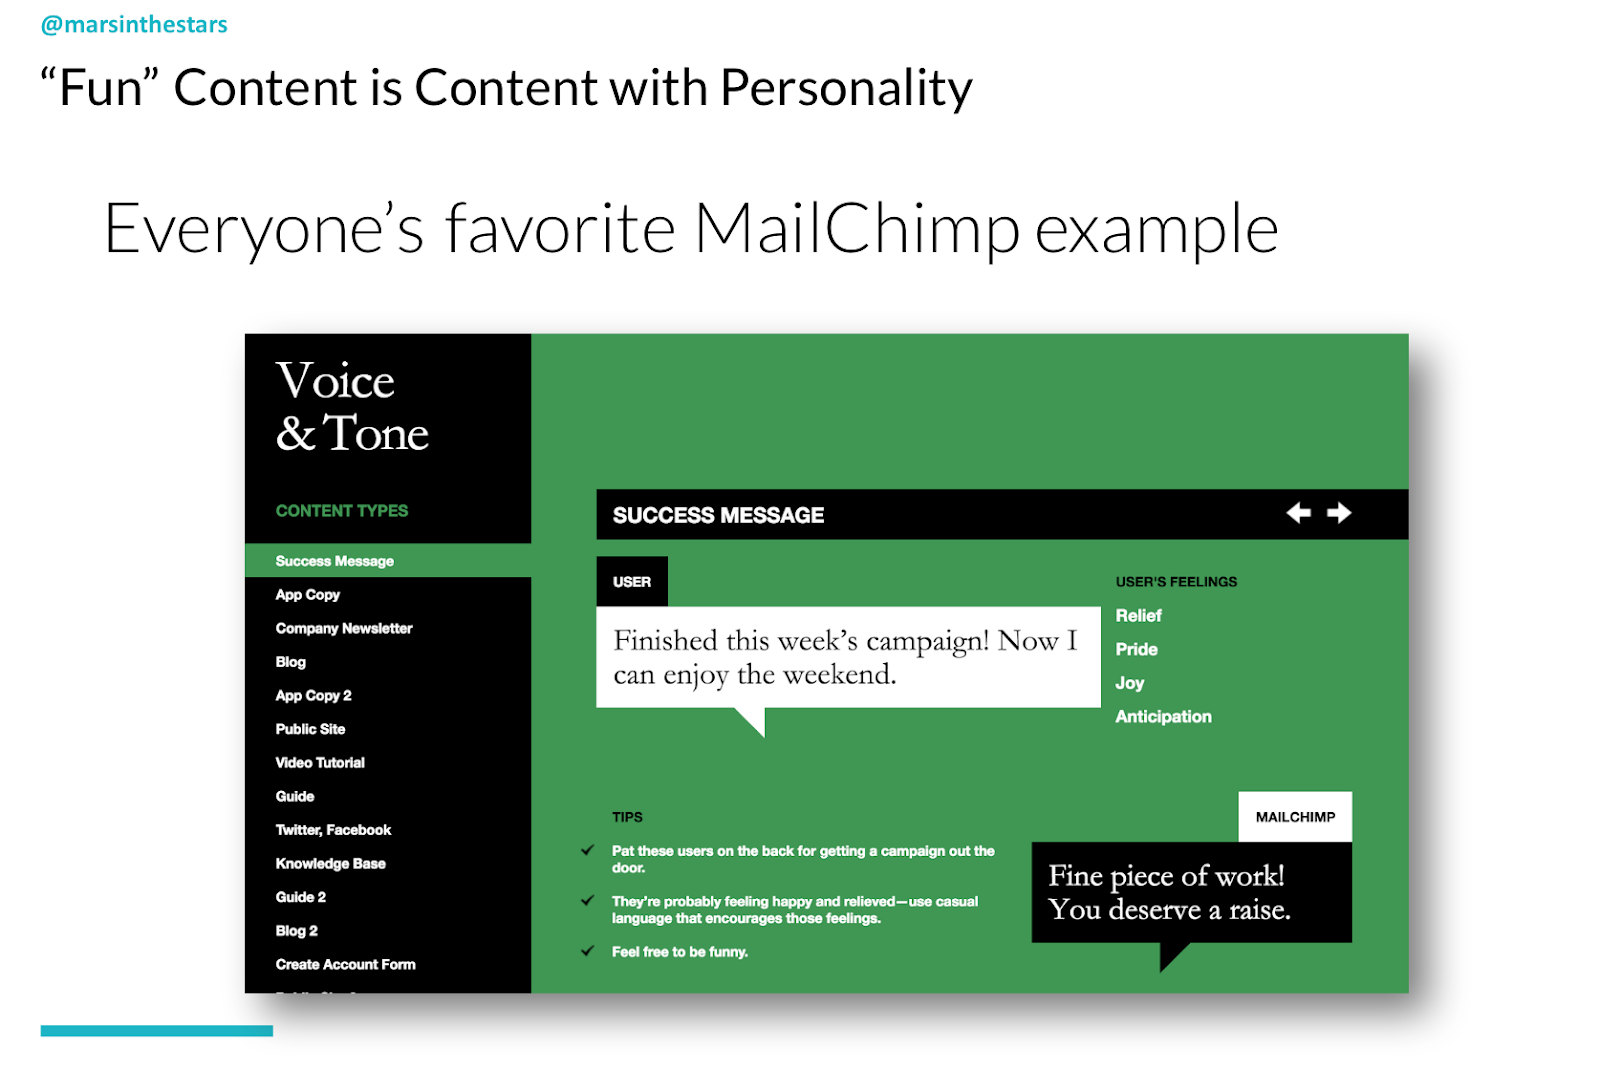 Slide shows Mailchimp's old voice and tone guidelines which show we can be fun, and inject personality into content. It shows their success message should be matched to user feelings of relief, pride, joy and anticipation when they finish a project. The message is 'fine piece of work! You deserve a raise.'